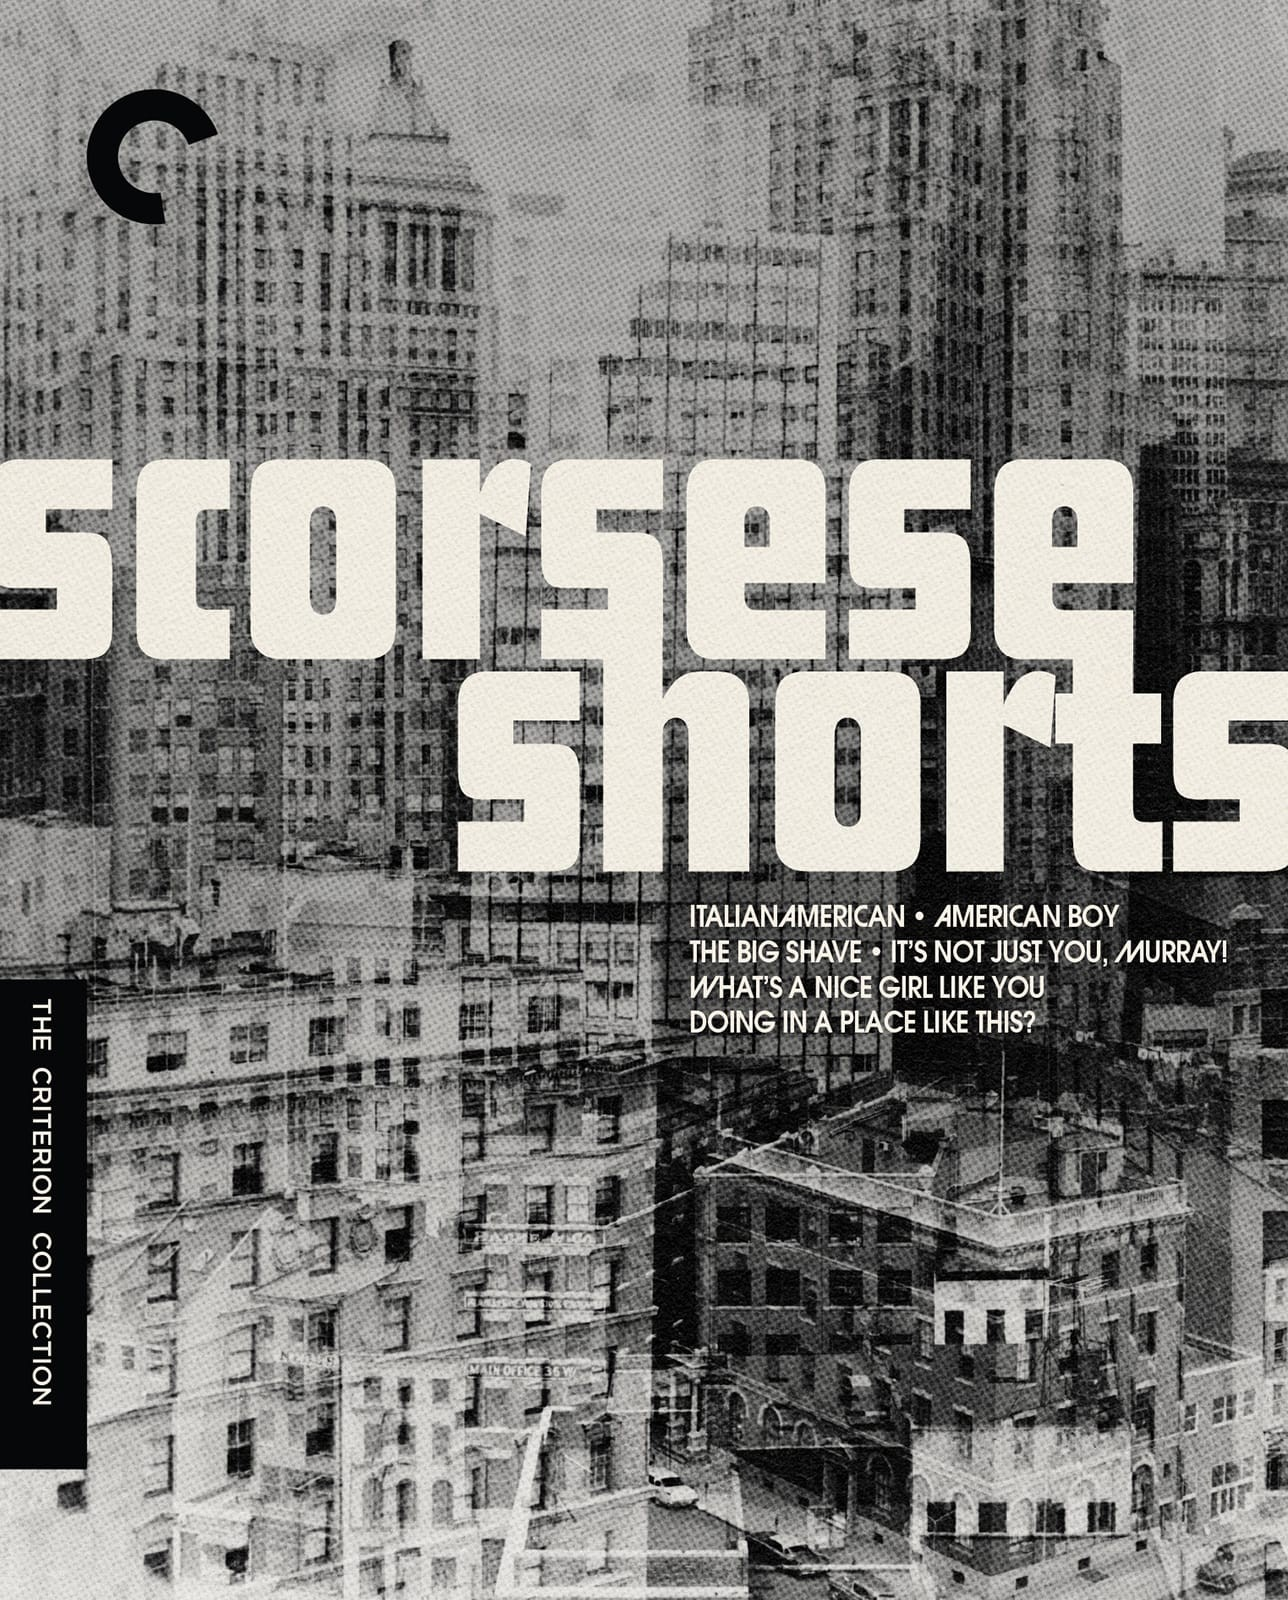 Scorsese Shorts (0) | The Criterion Collection